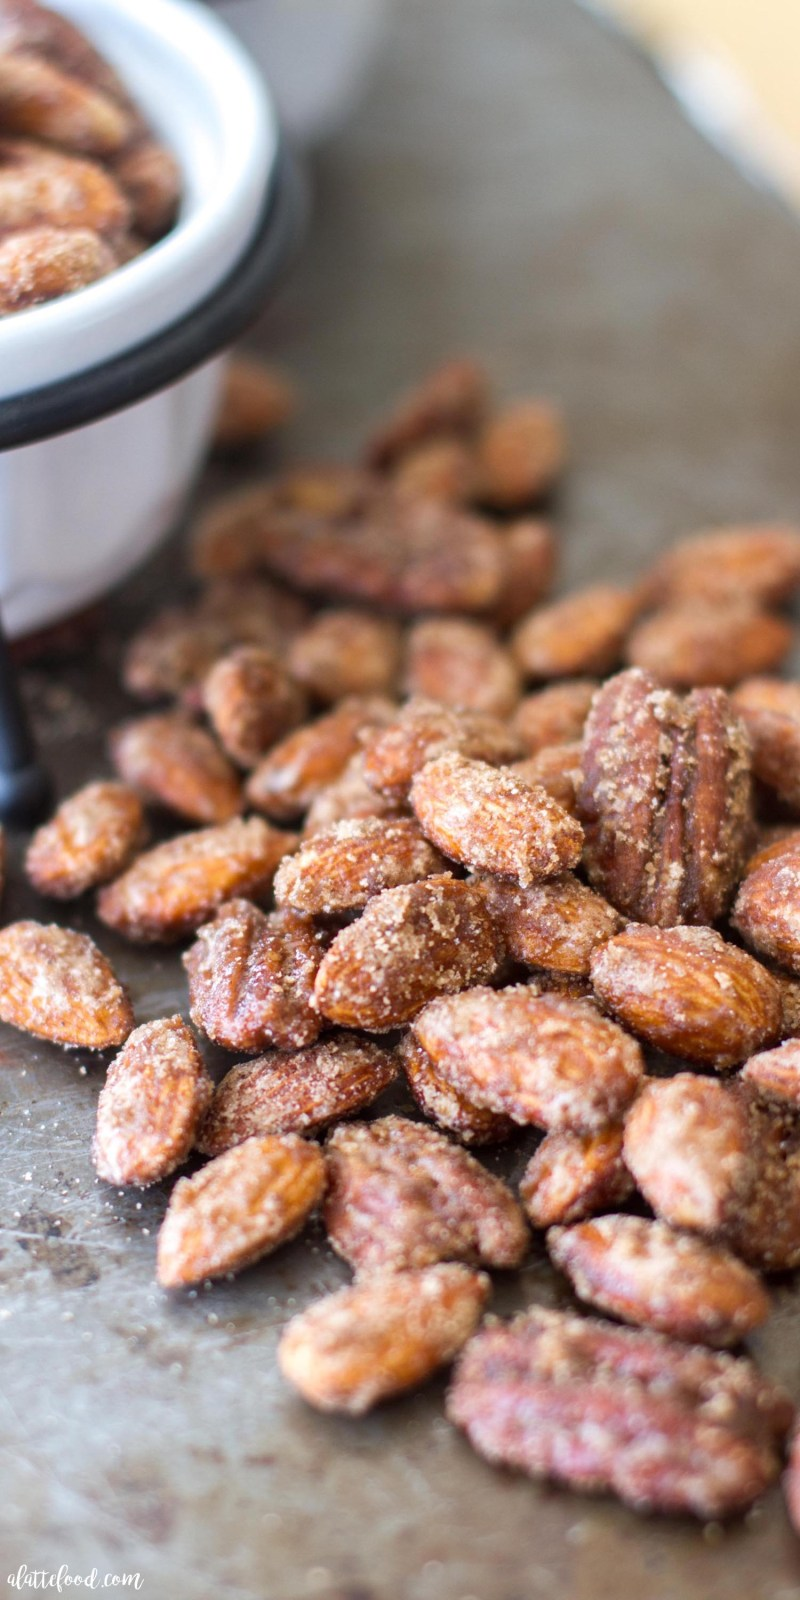 These sugared almonds and pecans are candied with a blend of pumpkin pie spice, white sugar, and brown sugar to make the most irresistible snack! Candied nuts are the ultimate fall snack, and this Pumpkin Spice Candied Nuts recipe is SO simple!